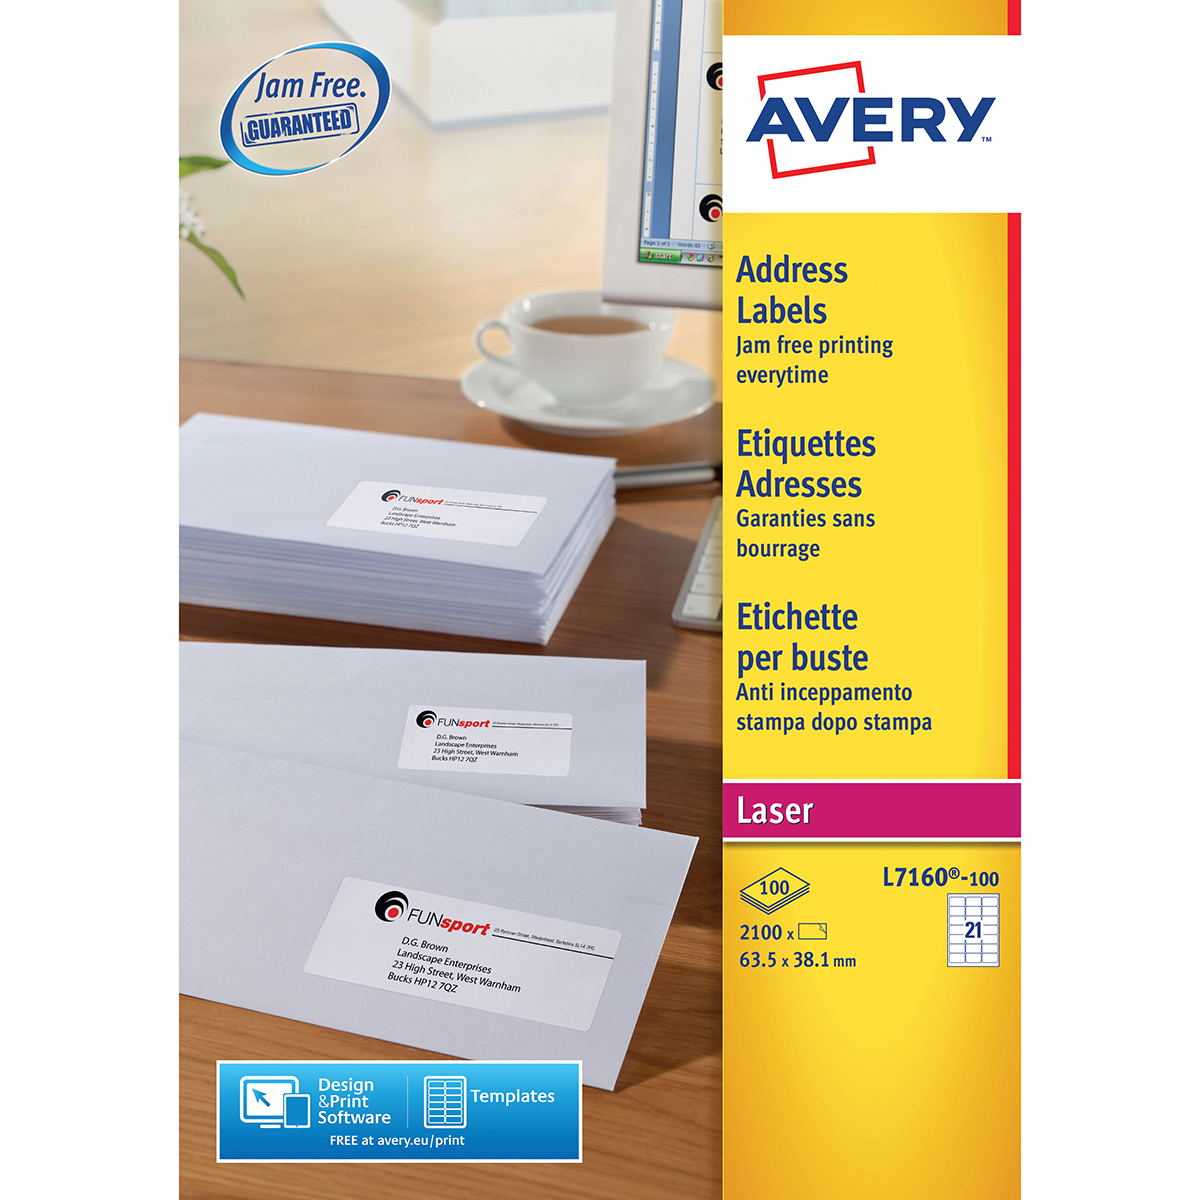 Avery L7160-100 Address Labels 100 sheets - 21 Labels per Sheet